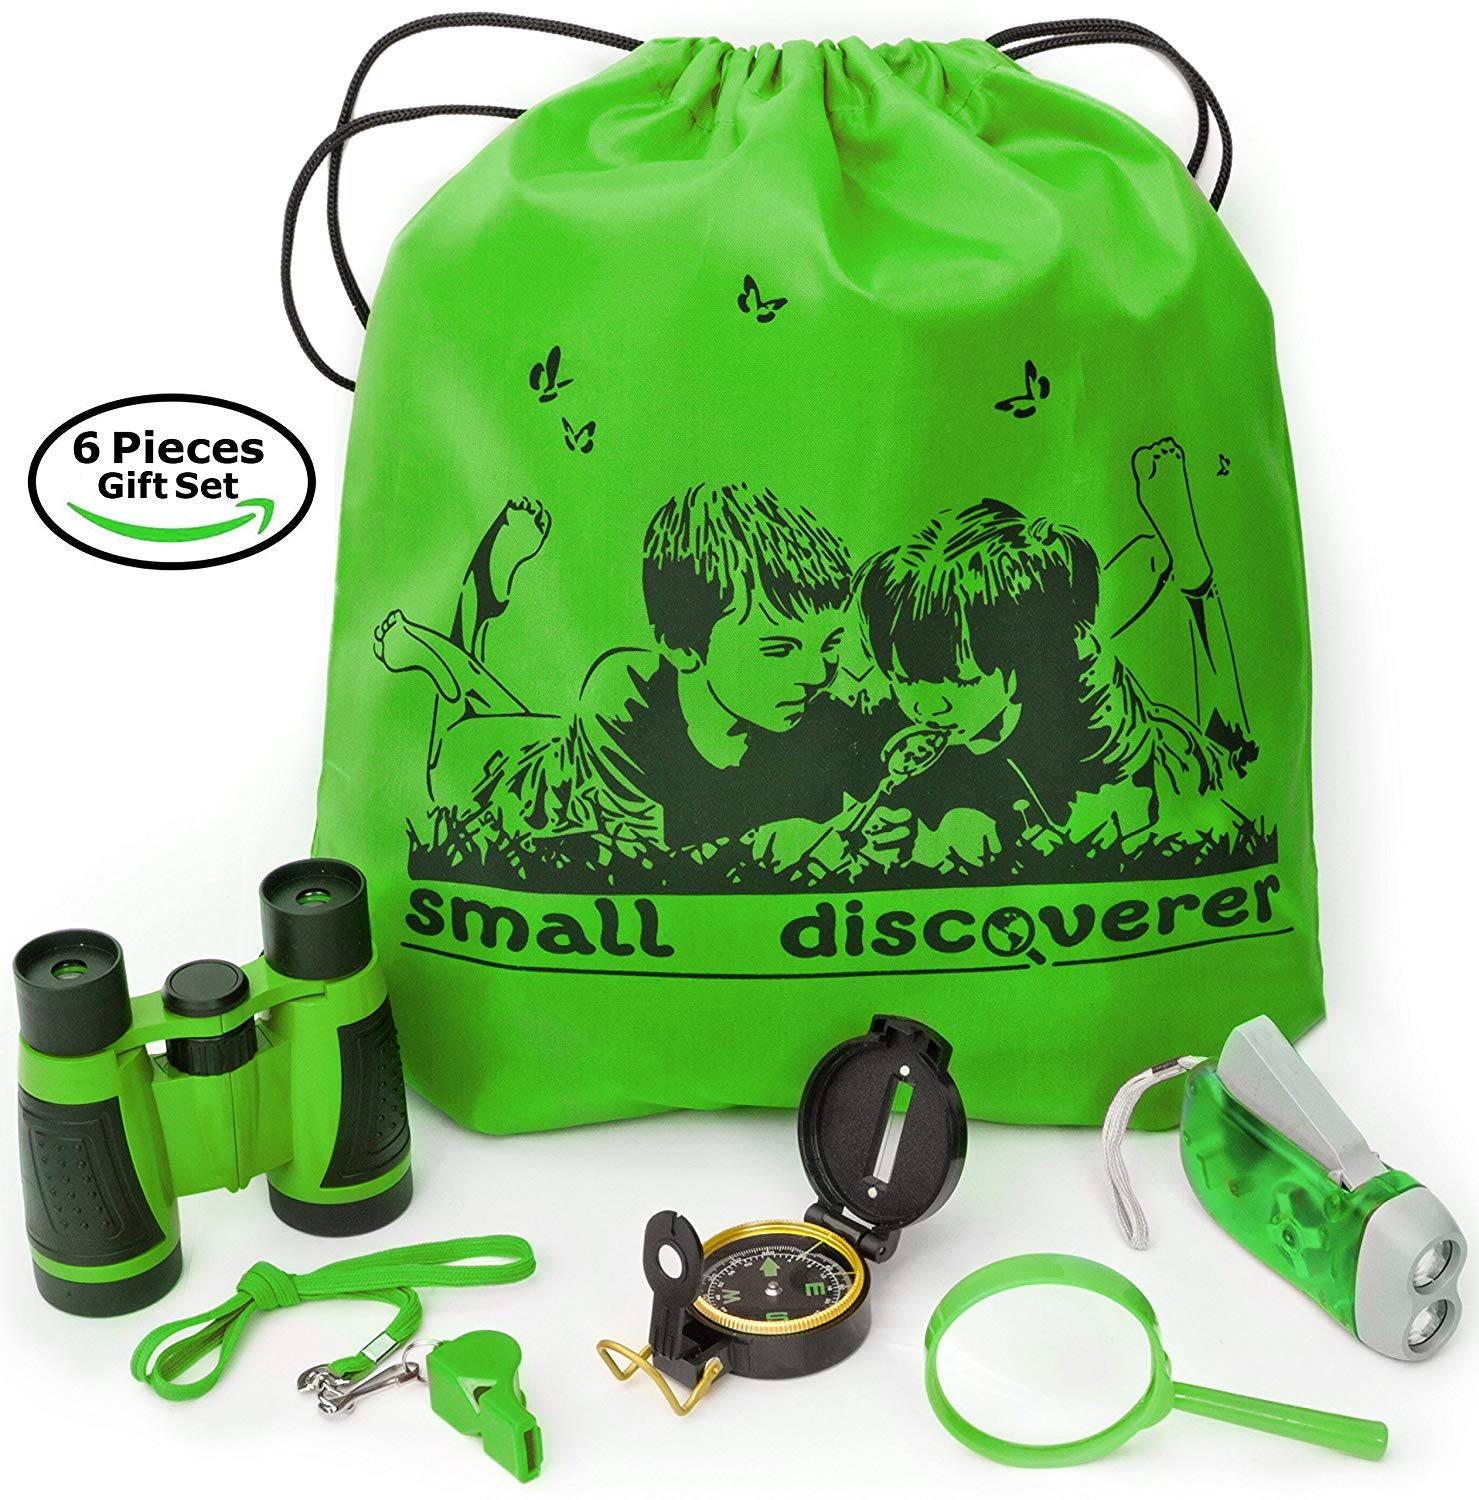 An outdoor exploration set